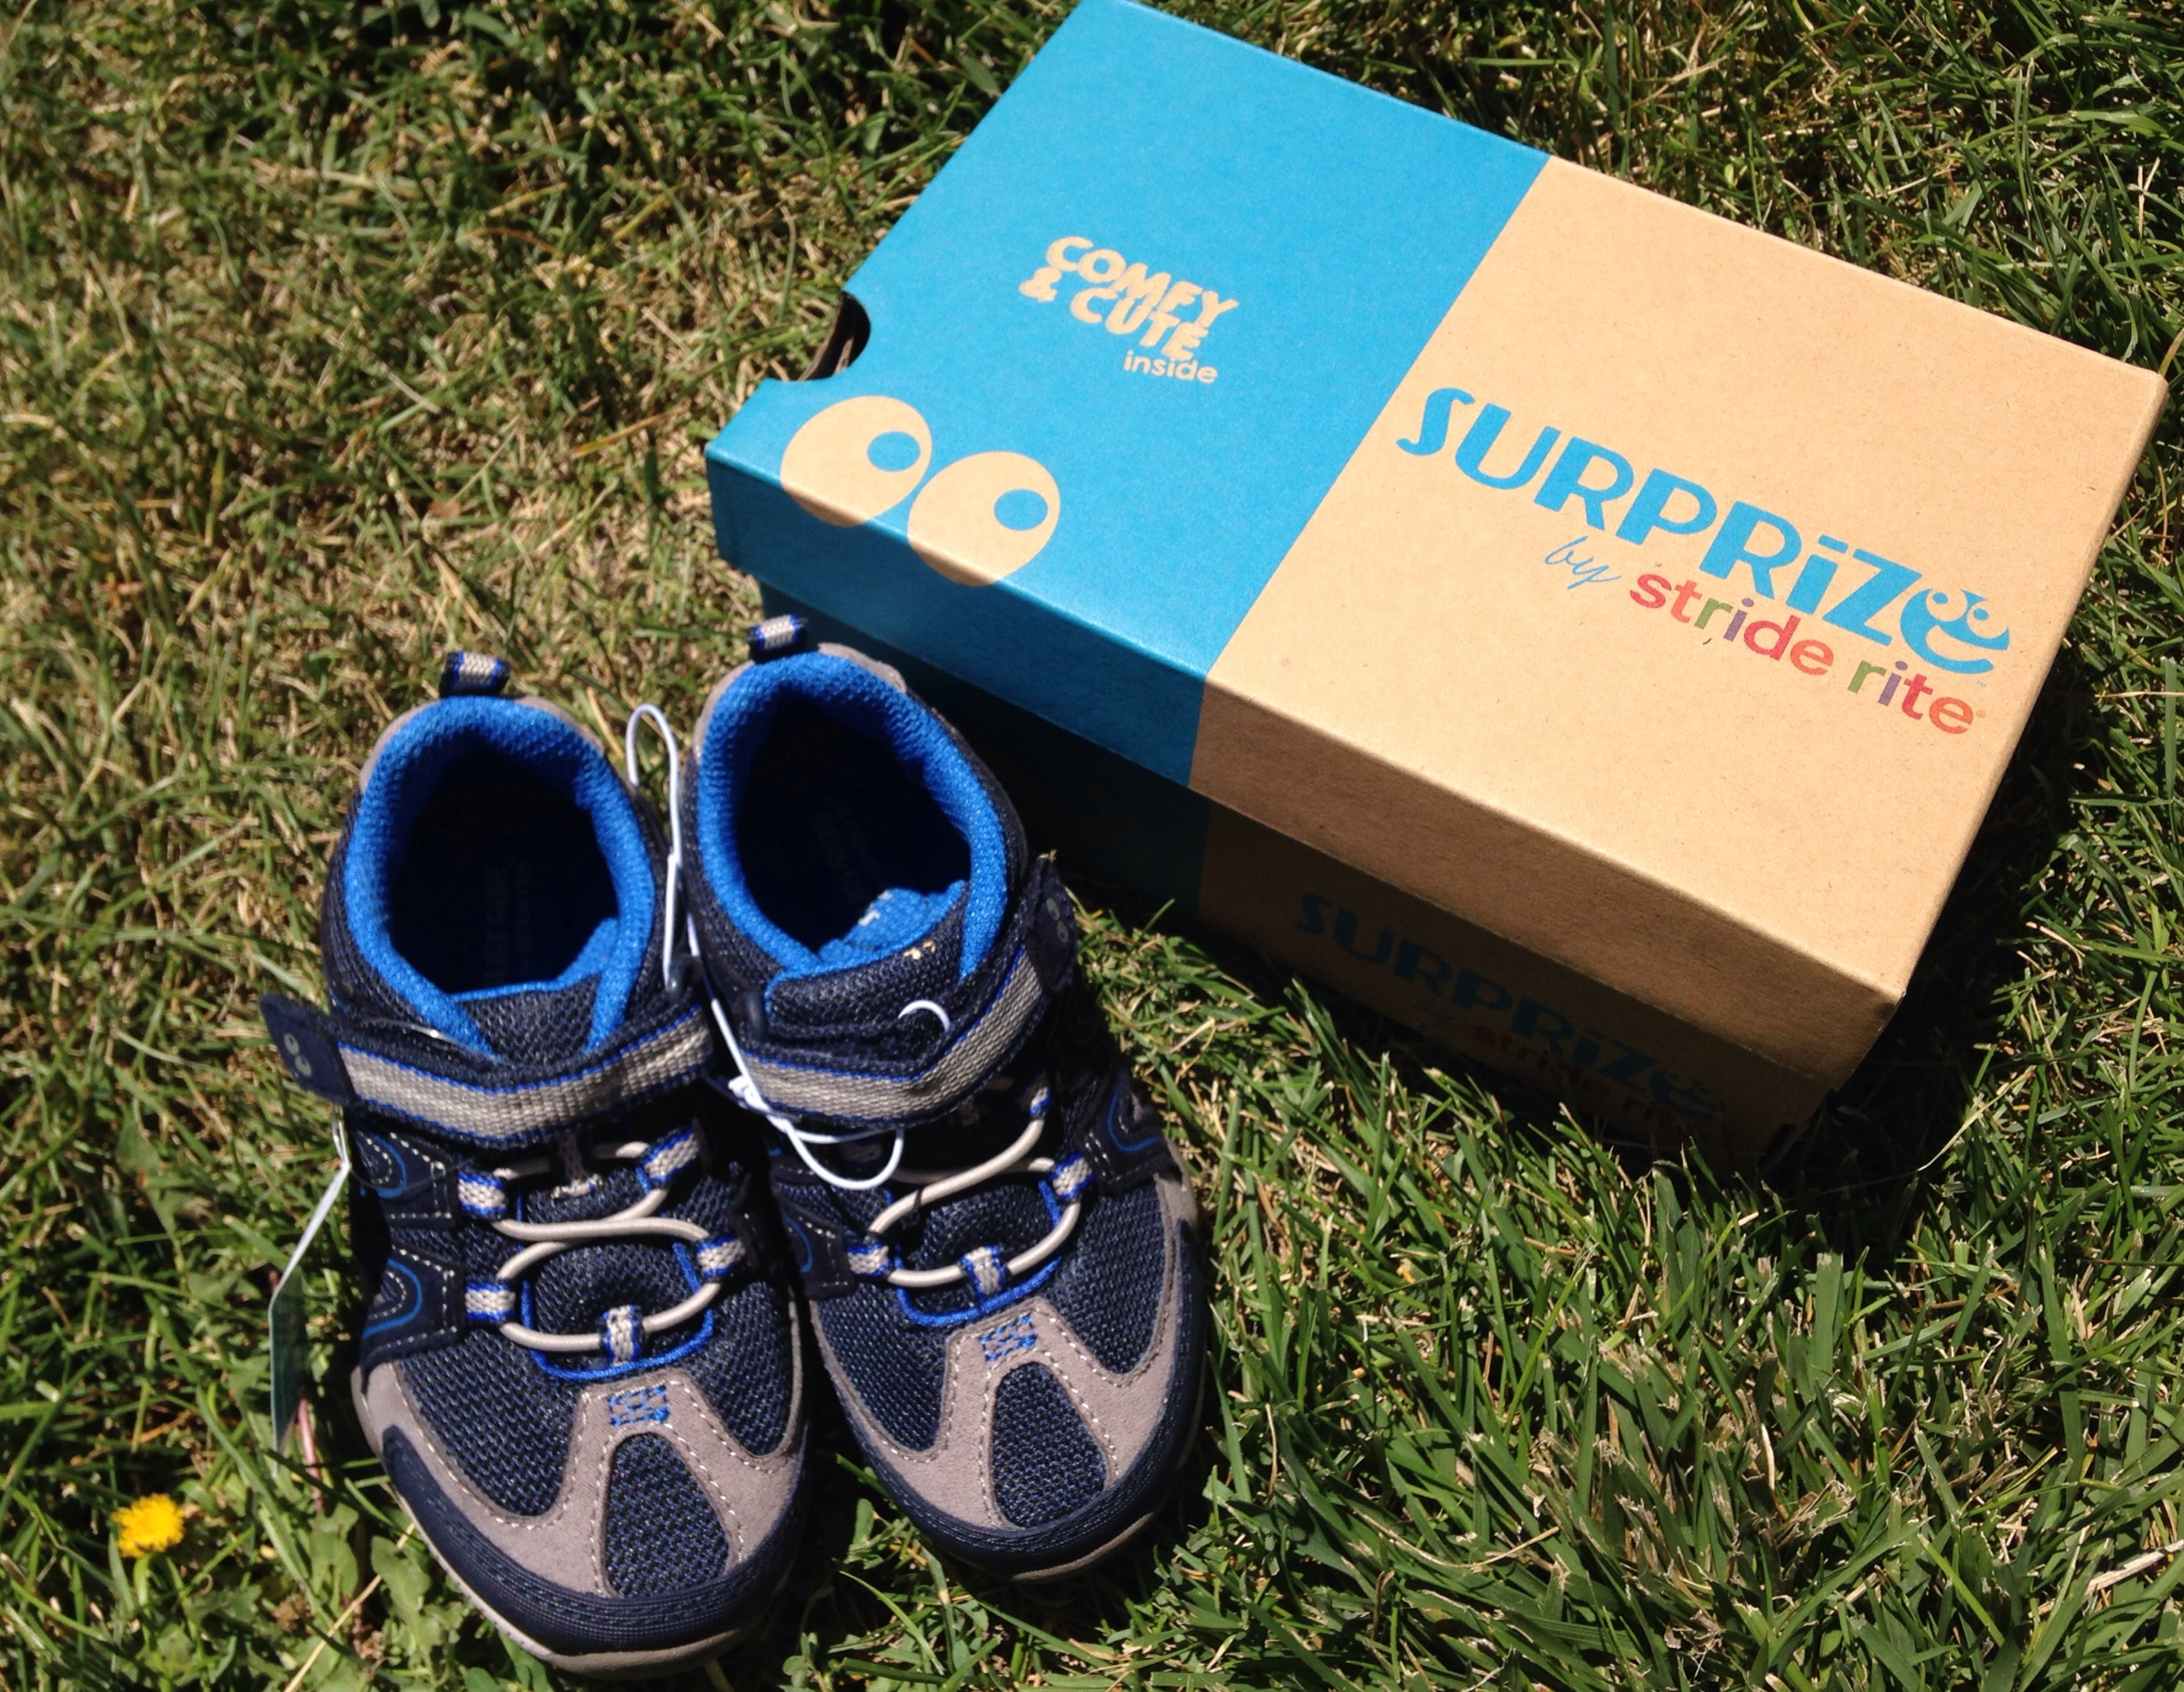 Surprize by Stride Rite at Target -cozy, comfy, cute, and durable Children't shoes to keep up with your little adventurer!